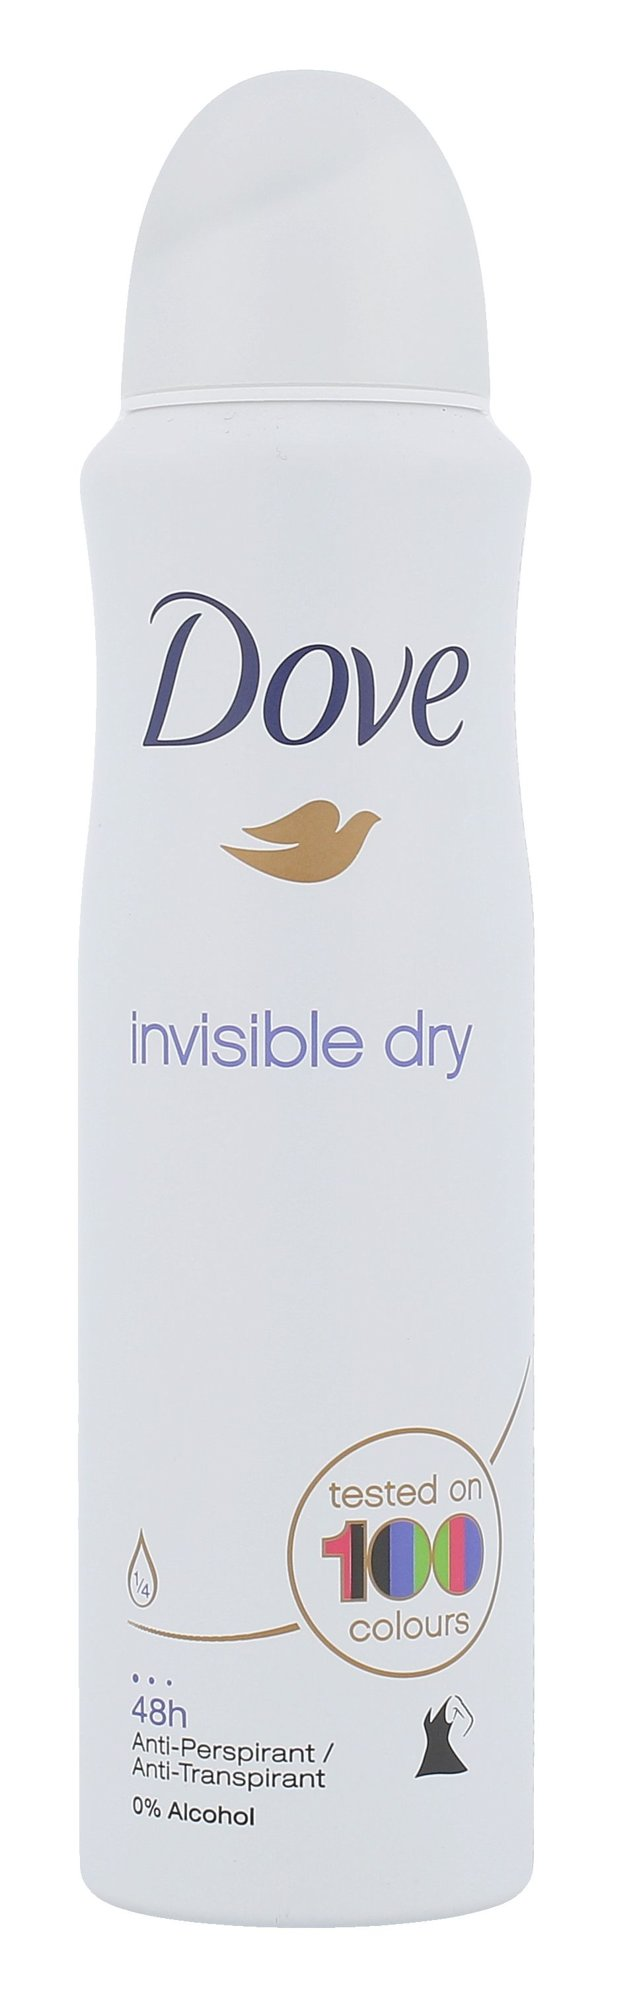 Dove Invisible Dry Cosmetic 150ml